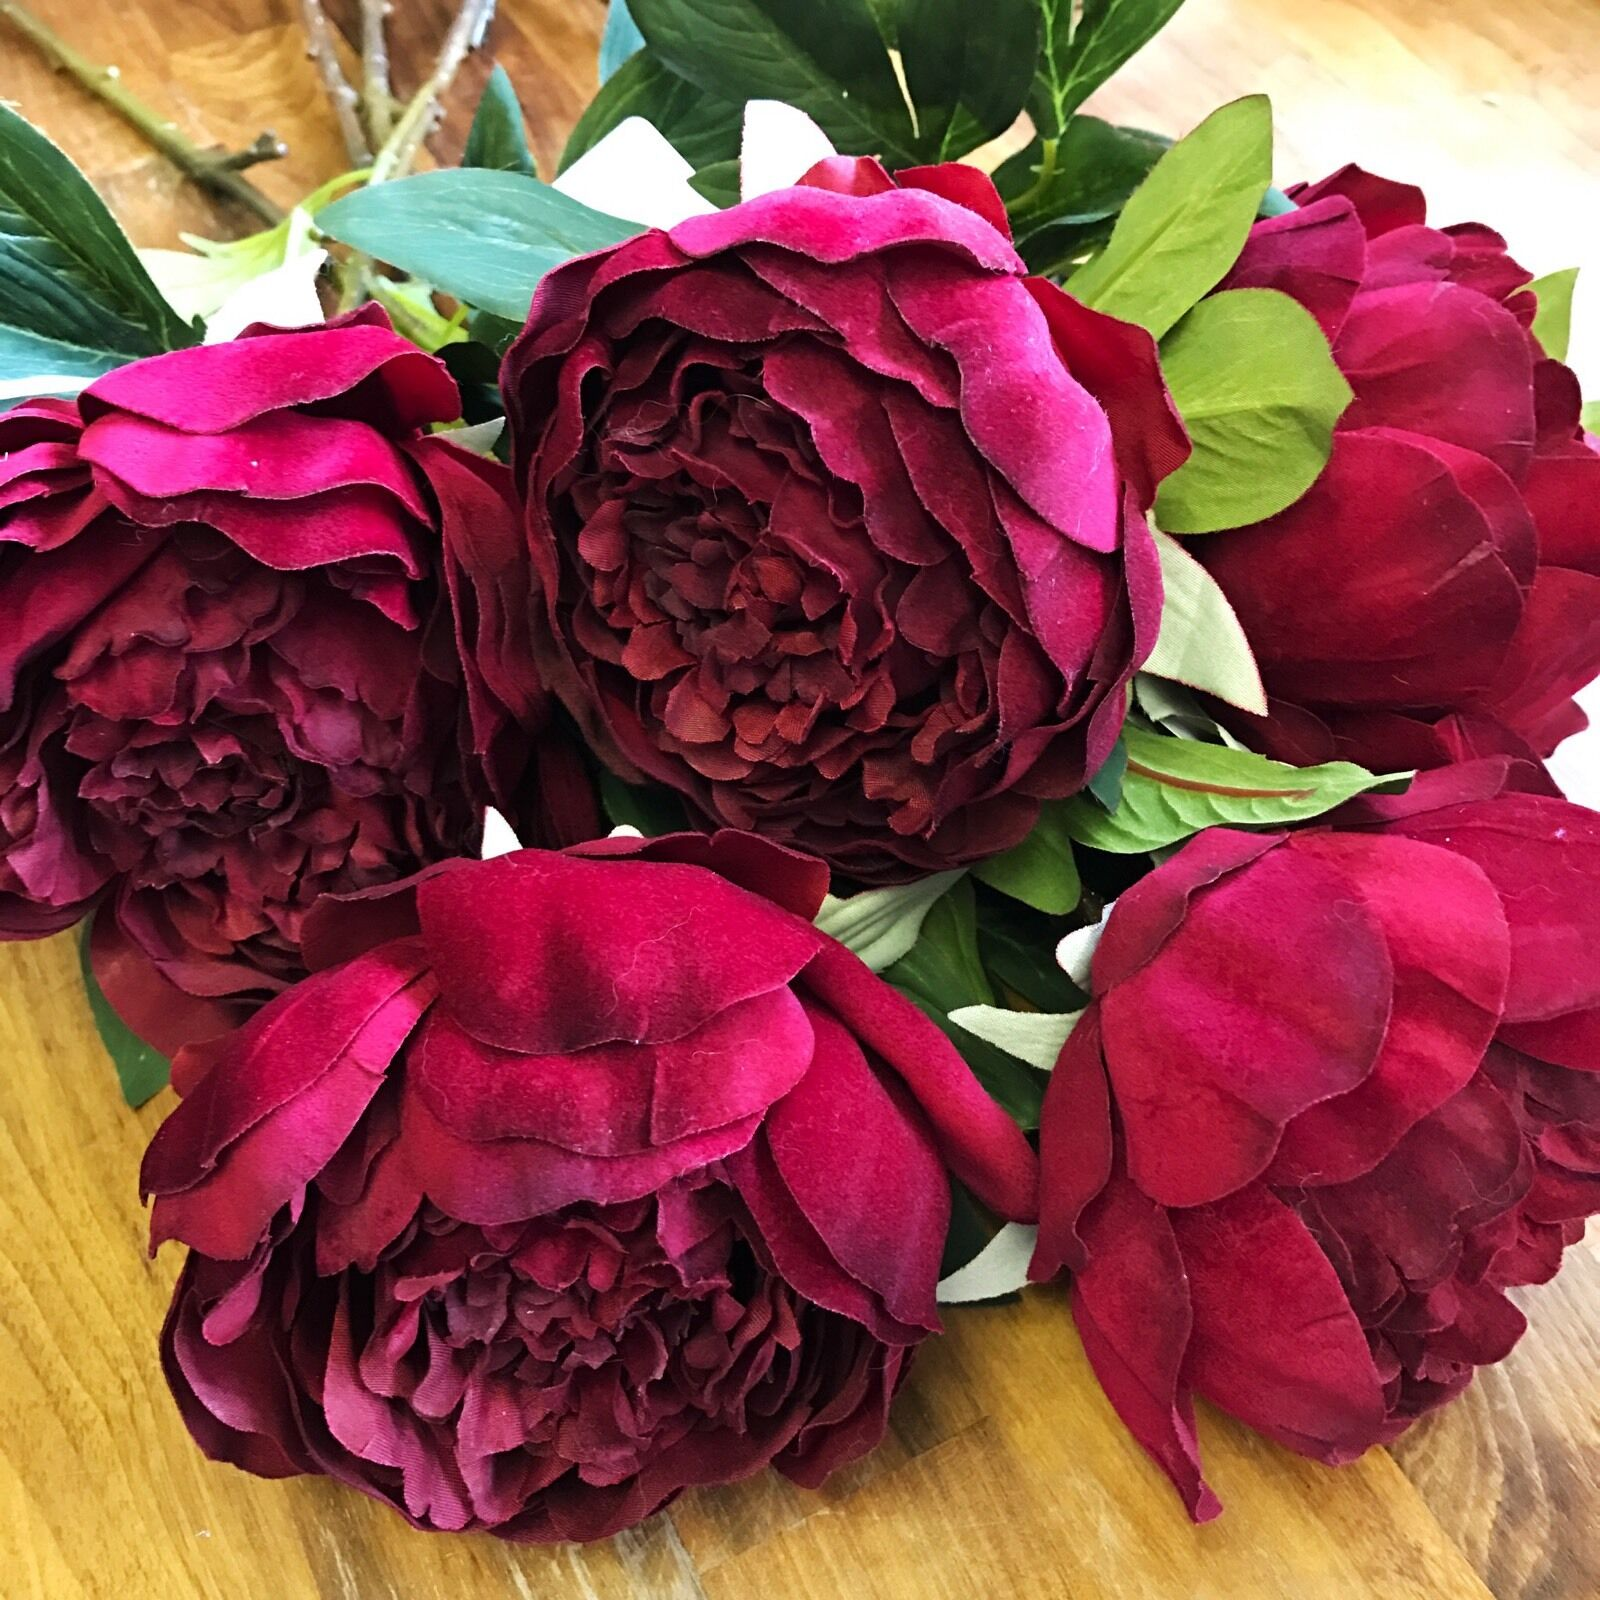 Bunch of 5 Large Realistic rot Peonies, Artificial Luxury Giant Silk Flowers